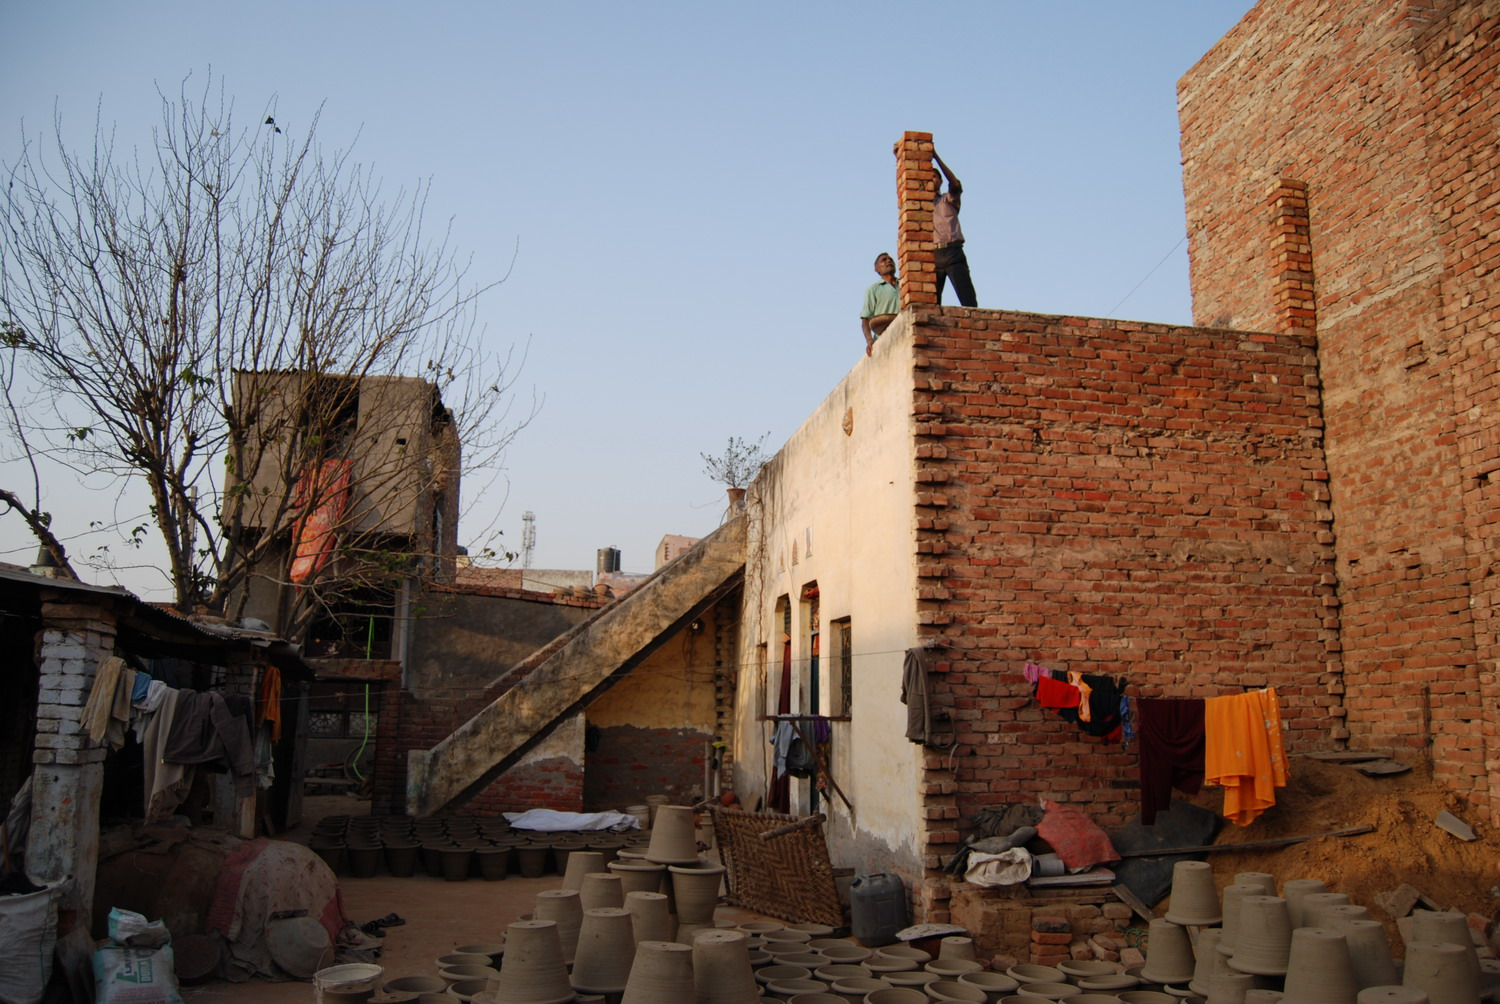 Manohar Lal and nephew creating a rooftop workshop